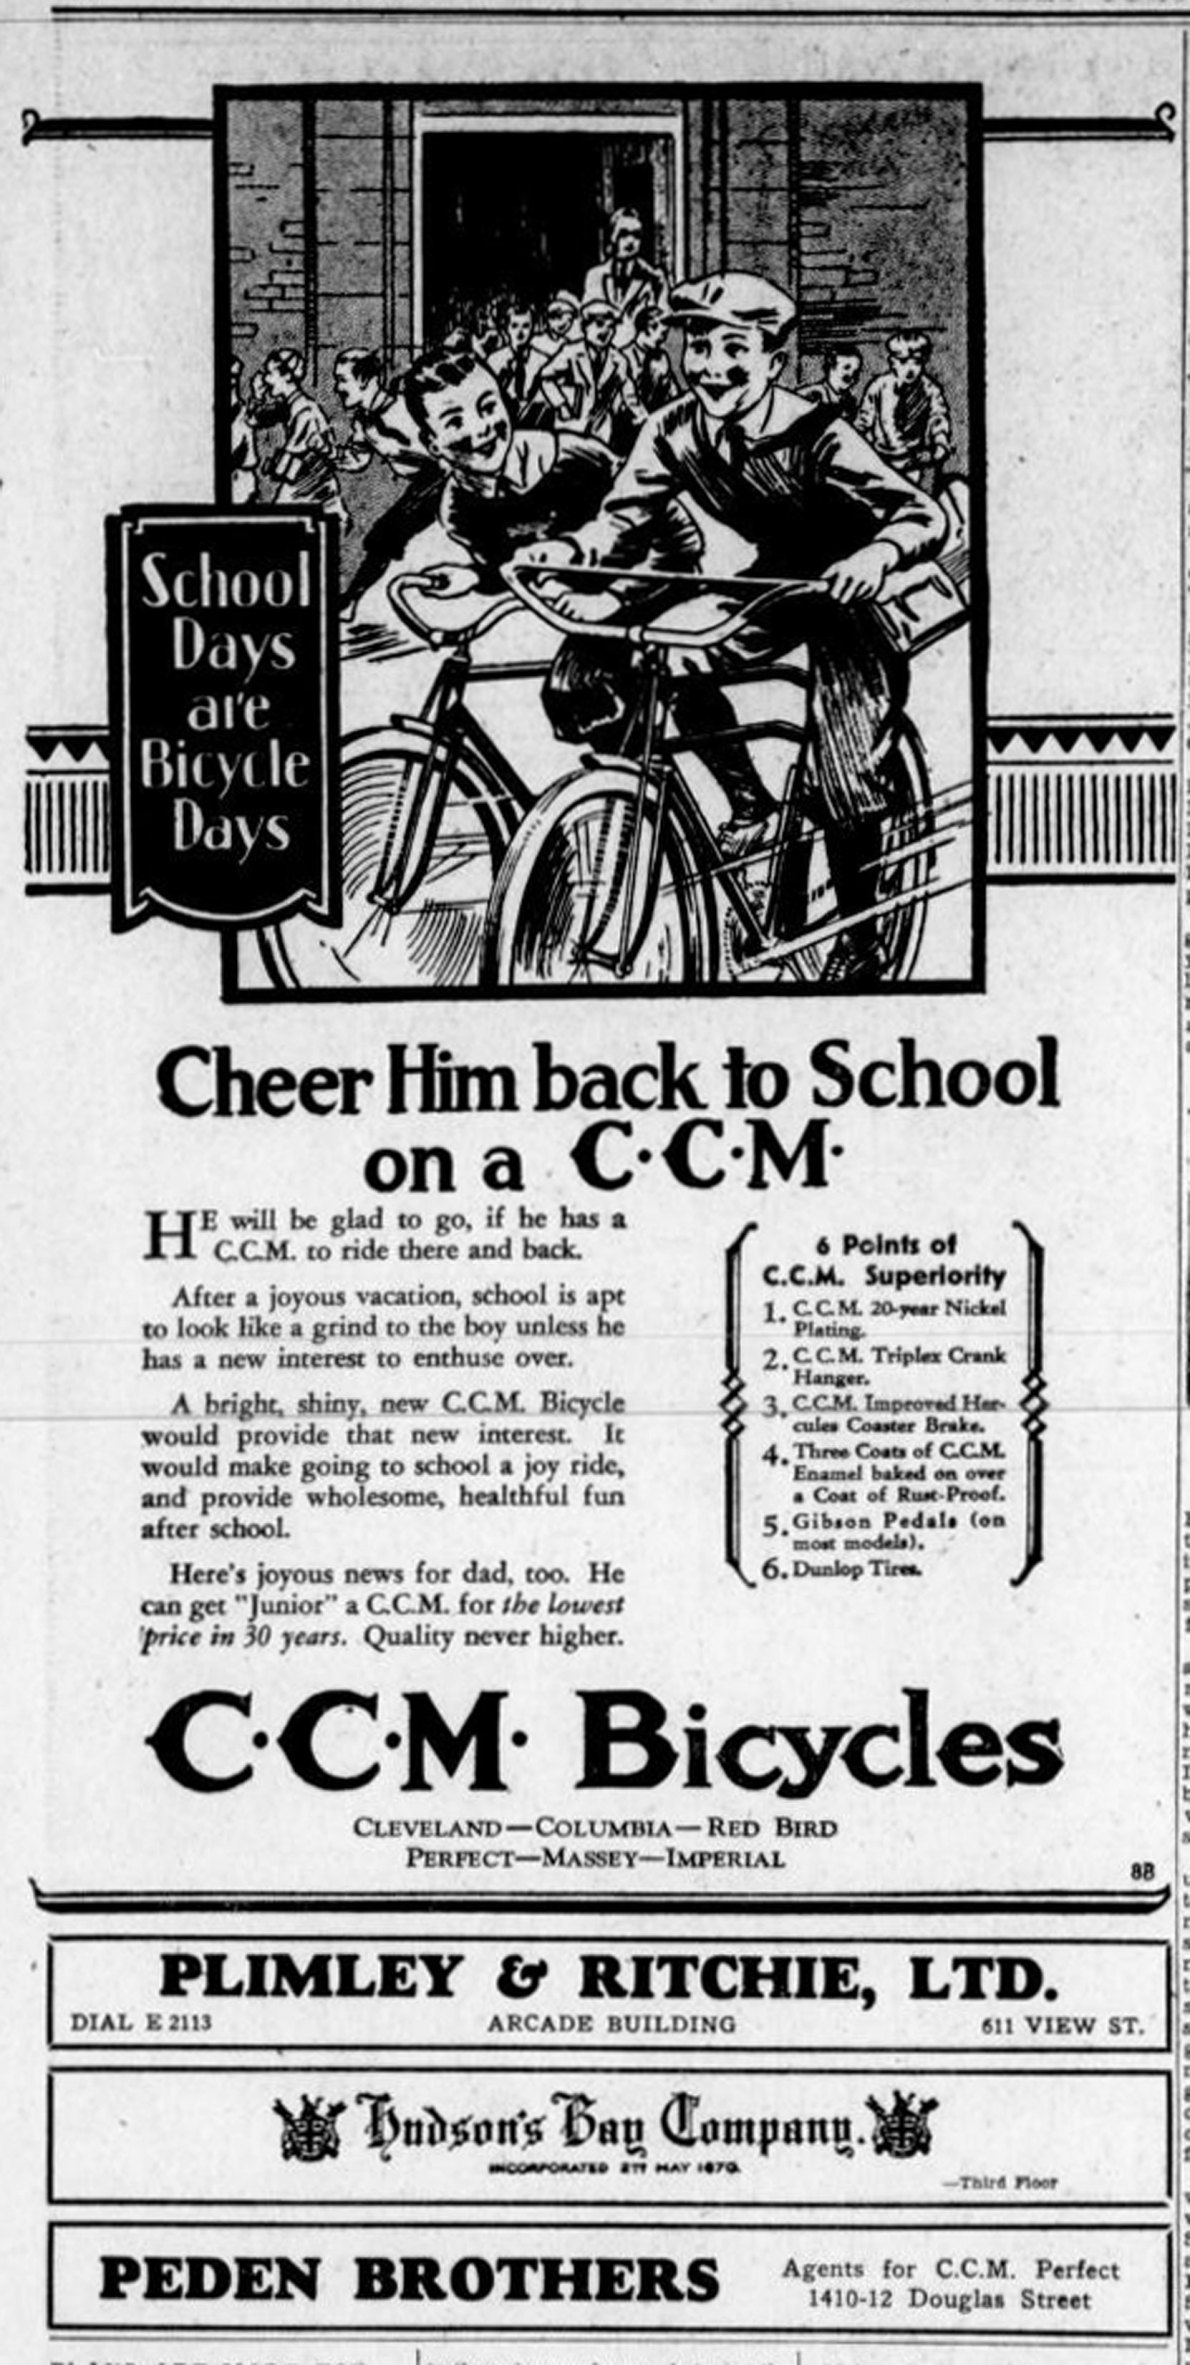 1931 advertisement for CCM Bicycles, available in Victoria at Hudson's Bay Co., 1701 Douglas Street, Plimley & Ritchie in the (now demolished) Arcade Building and Peden Brothers, 1410-1412 Douglas Street. (Victoria Online Sightseeing Tours collection)